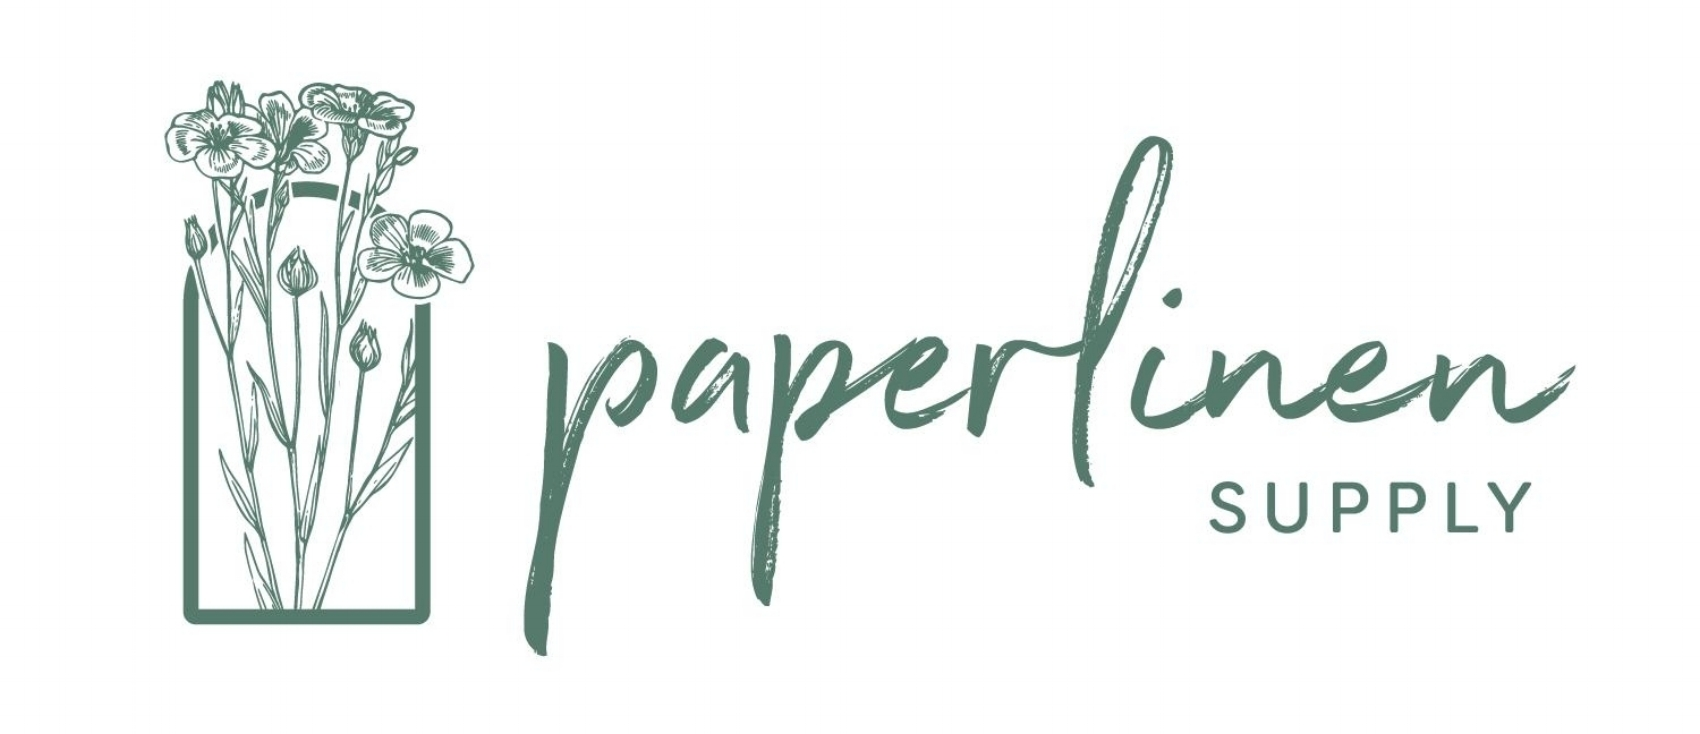 Paperlinen Supply